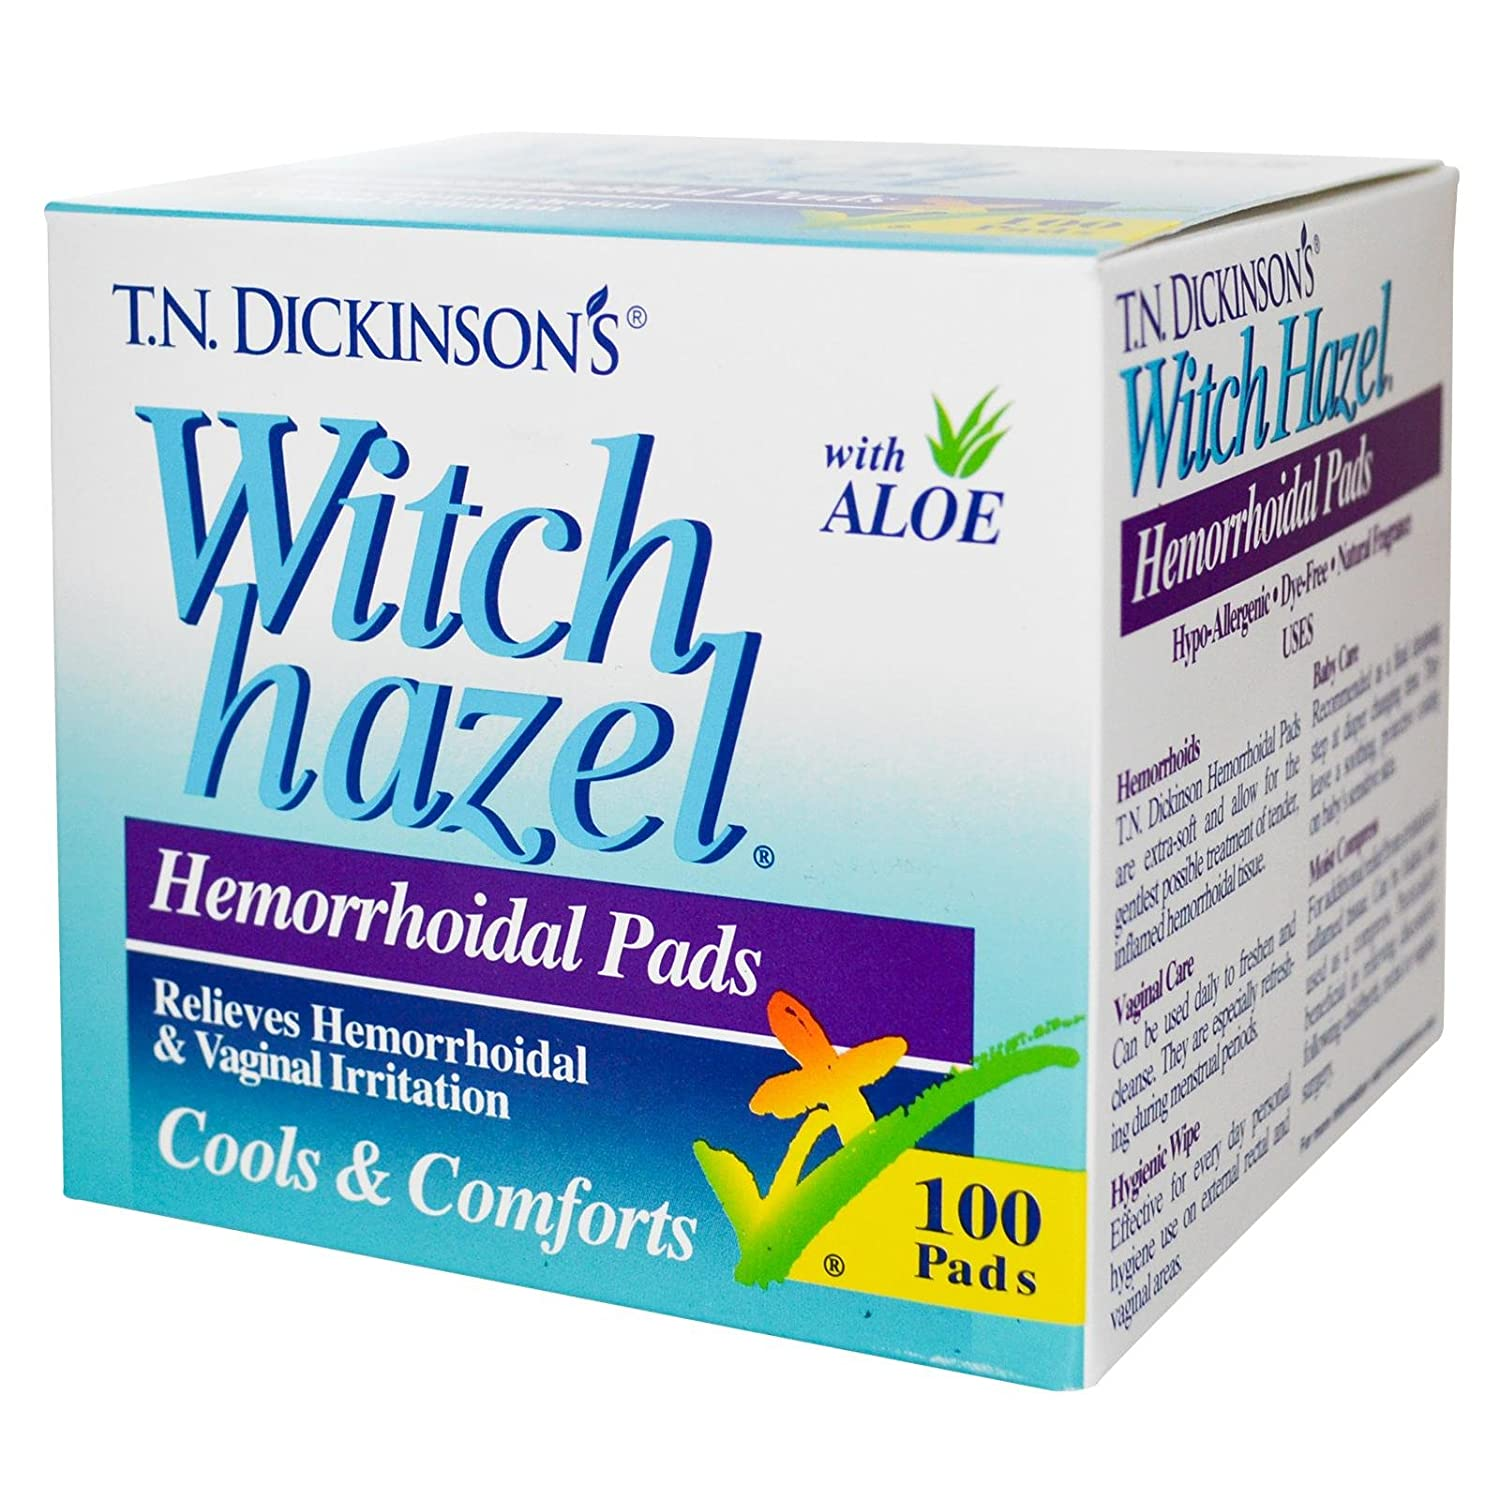 T.N. Dickinsons Witch Hazel Hemorrhoidal Pads with Aloe - 100 Ea: Amazon.es: Salud y cuidado personal